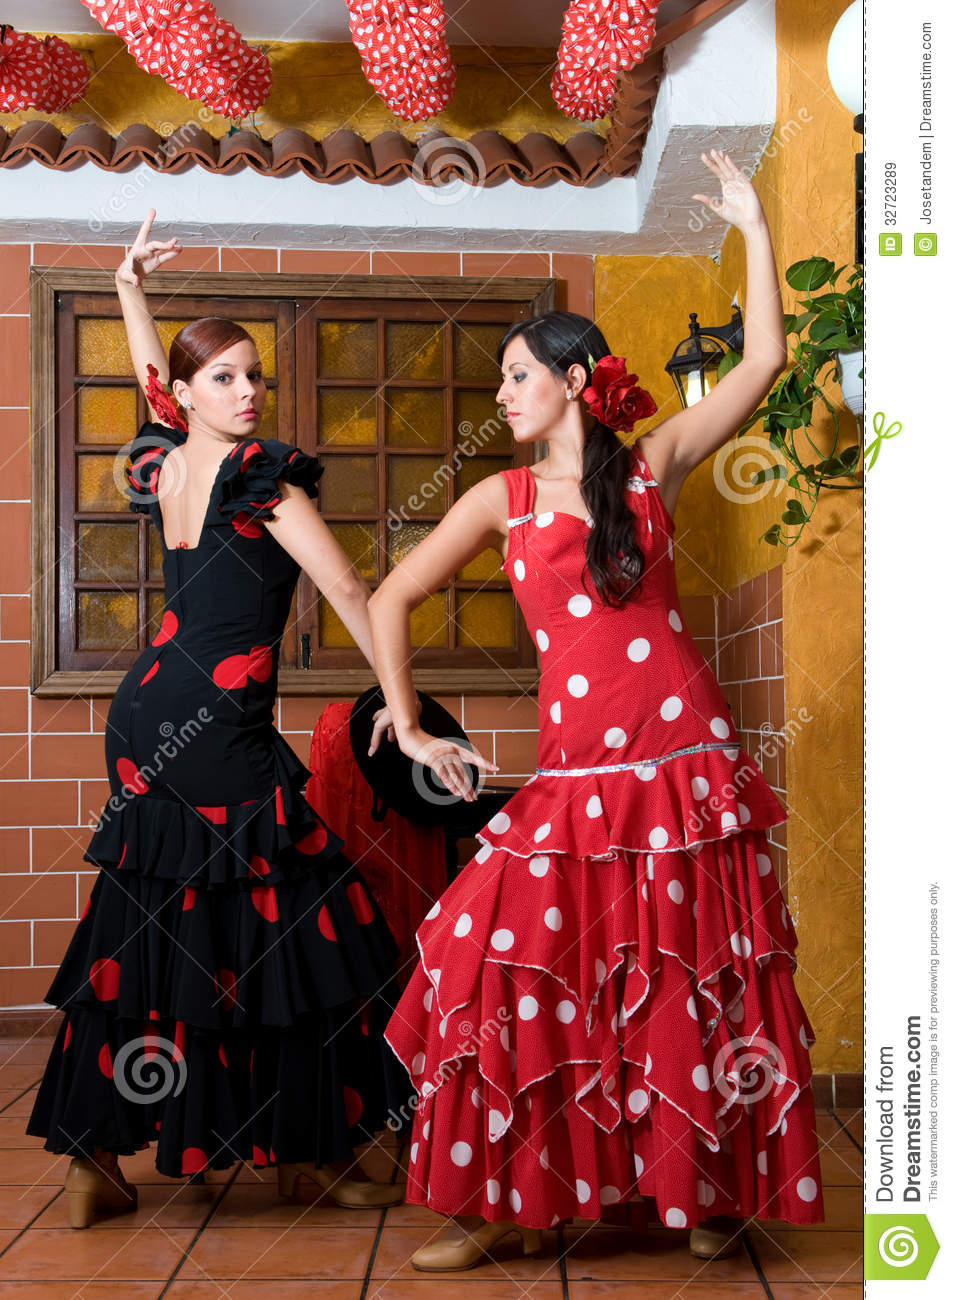 women in traditional flamenco dresses dance during the. Black Bedroom Furniture Sets. Home Design Ideas